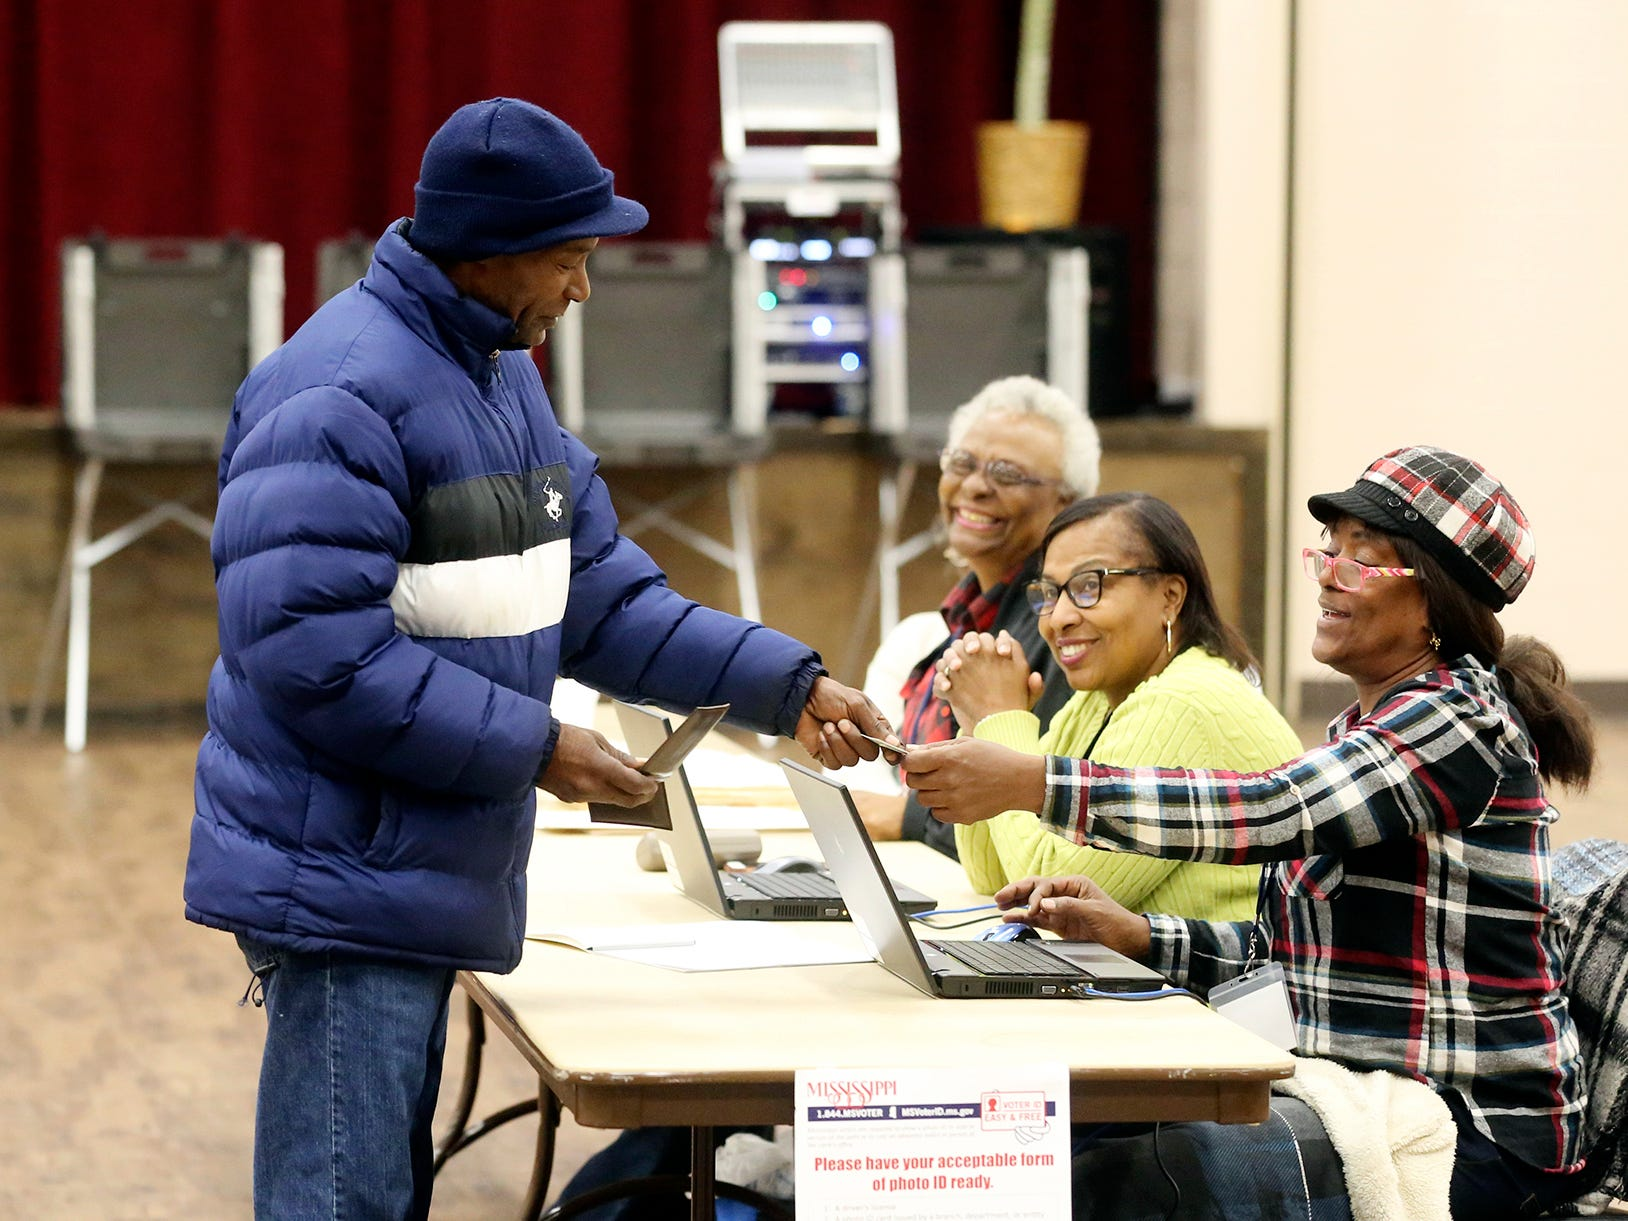 L.M. Walker  shows his identification to vote in a runoff election Tuesday, Nov. 27, 2018 in Gulfport, Miss.  Mississippi voters are deciding the last U.S. Senate race of the midterms, choosing between Democrat Mike Espy and Republican Sen. Cindy Hyde-Smith.